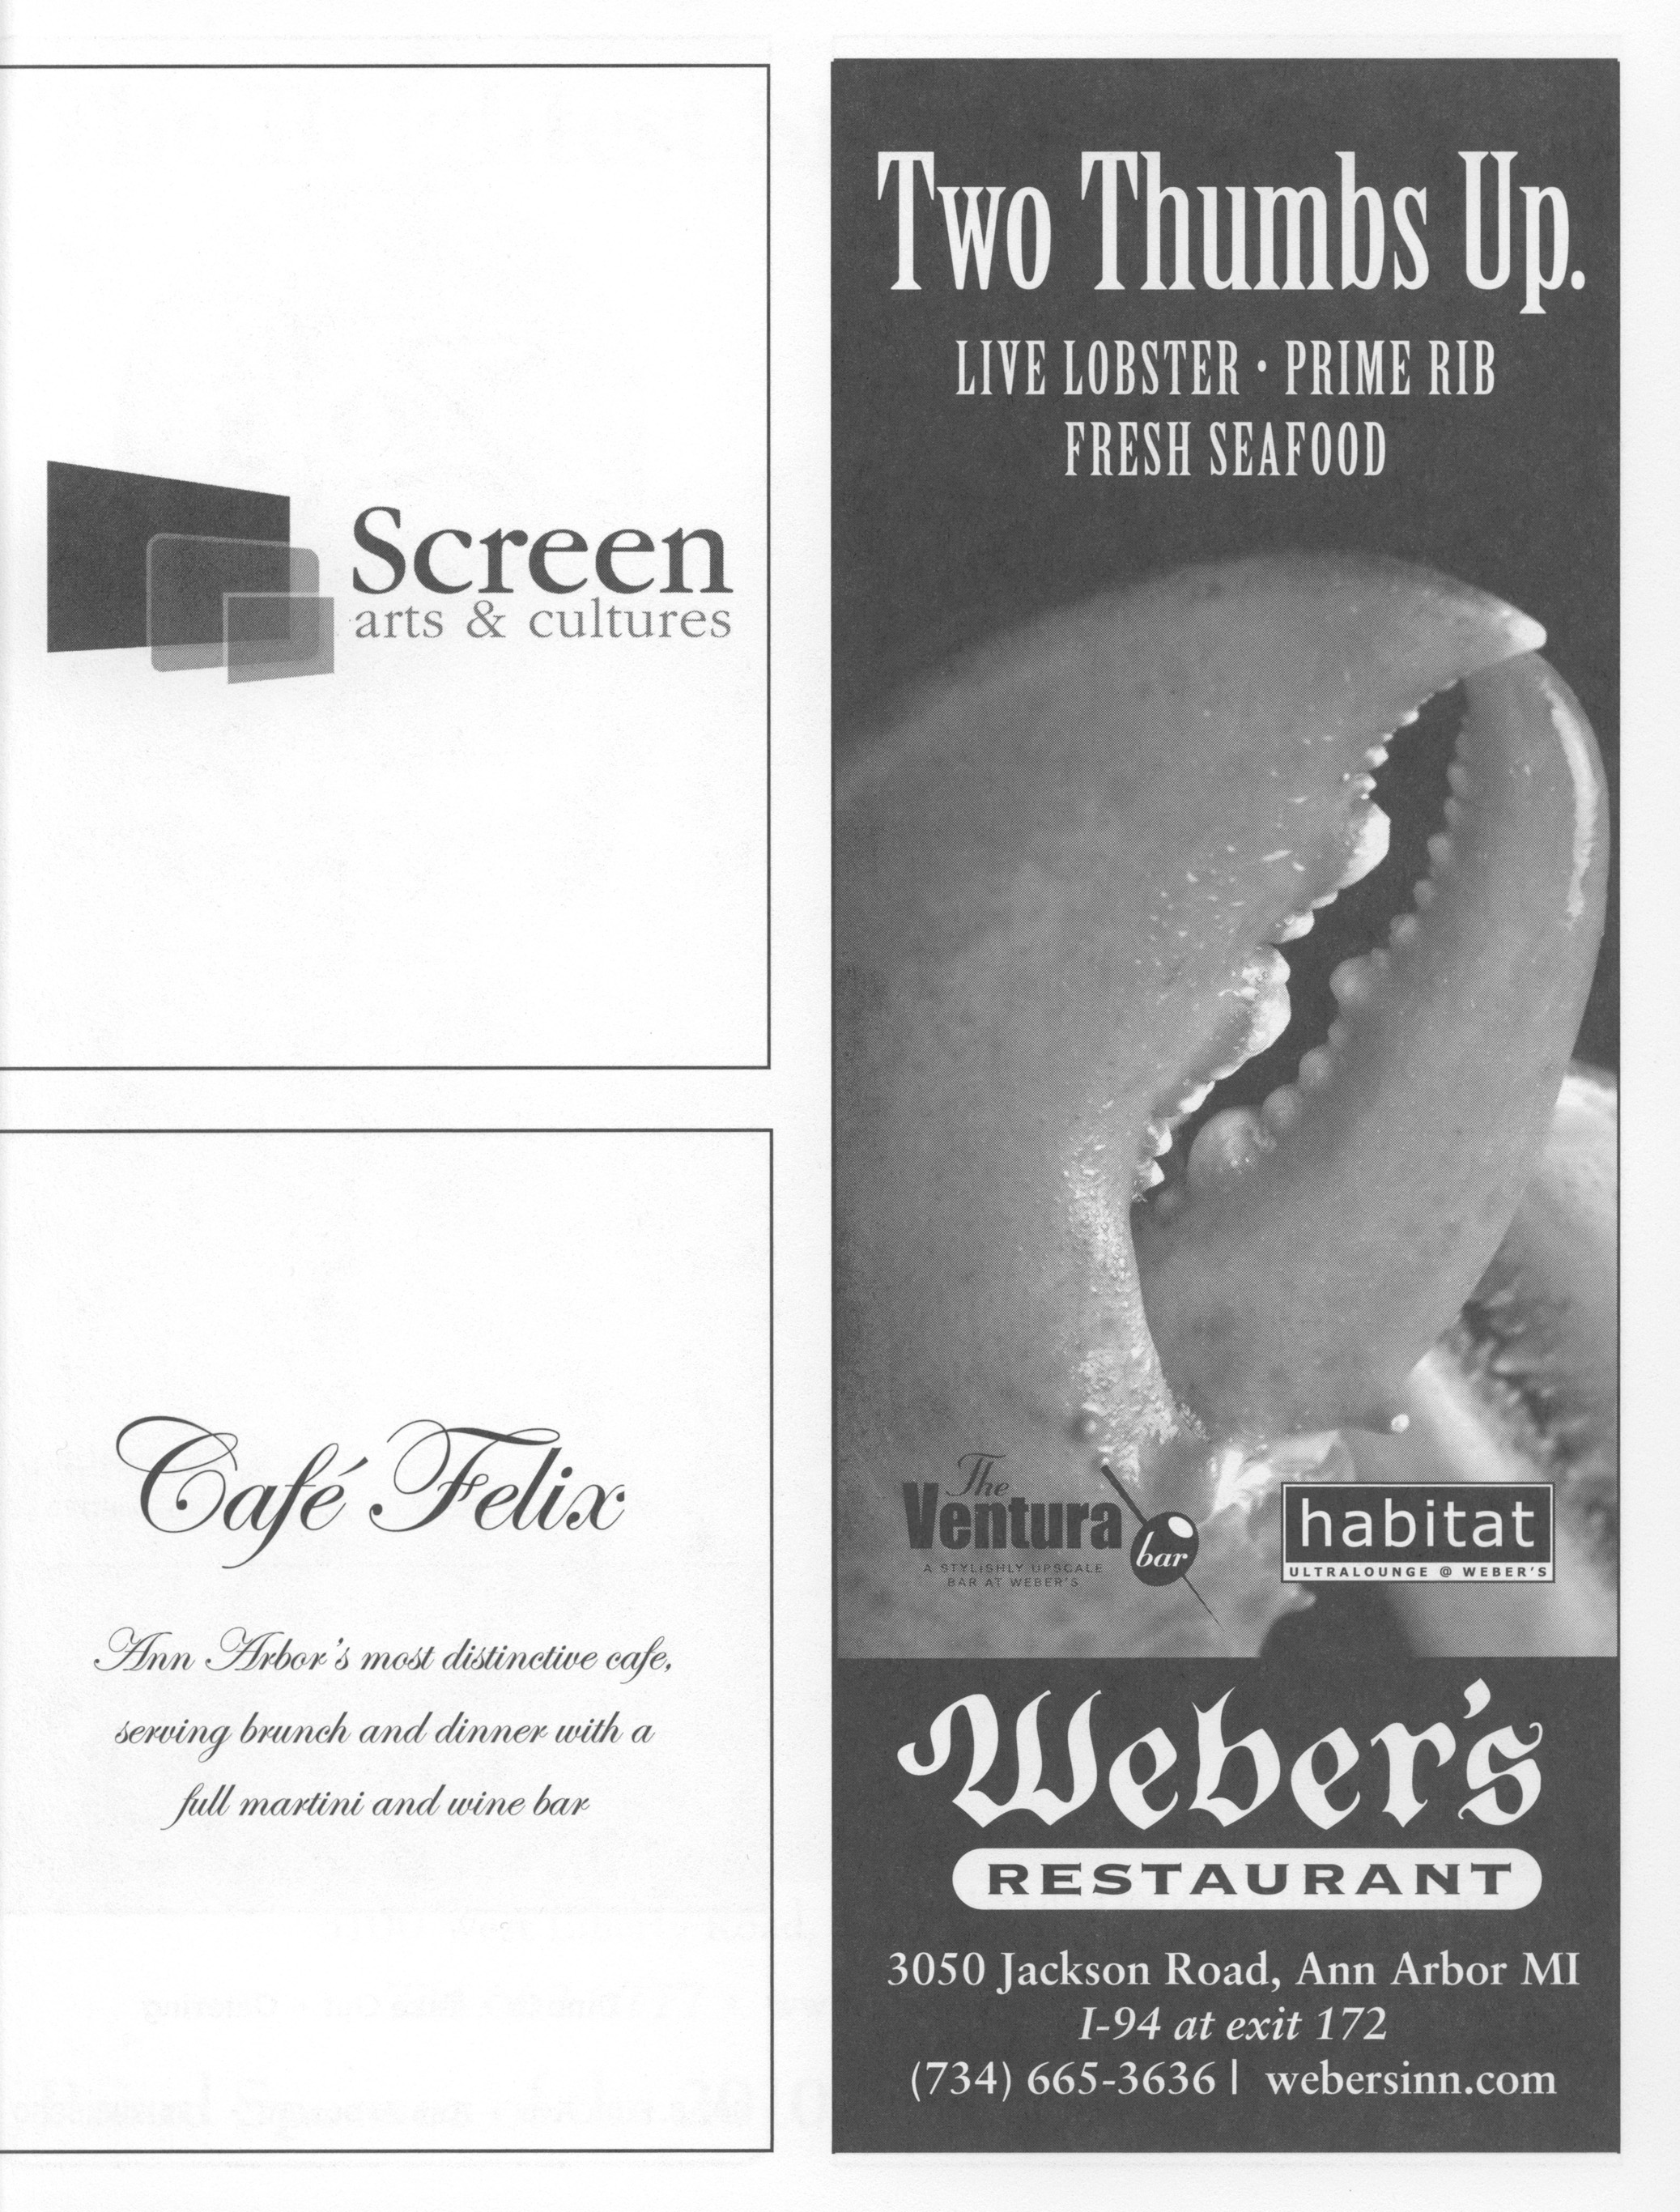 48th Ann Arbor Film Festival Program image